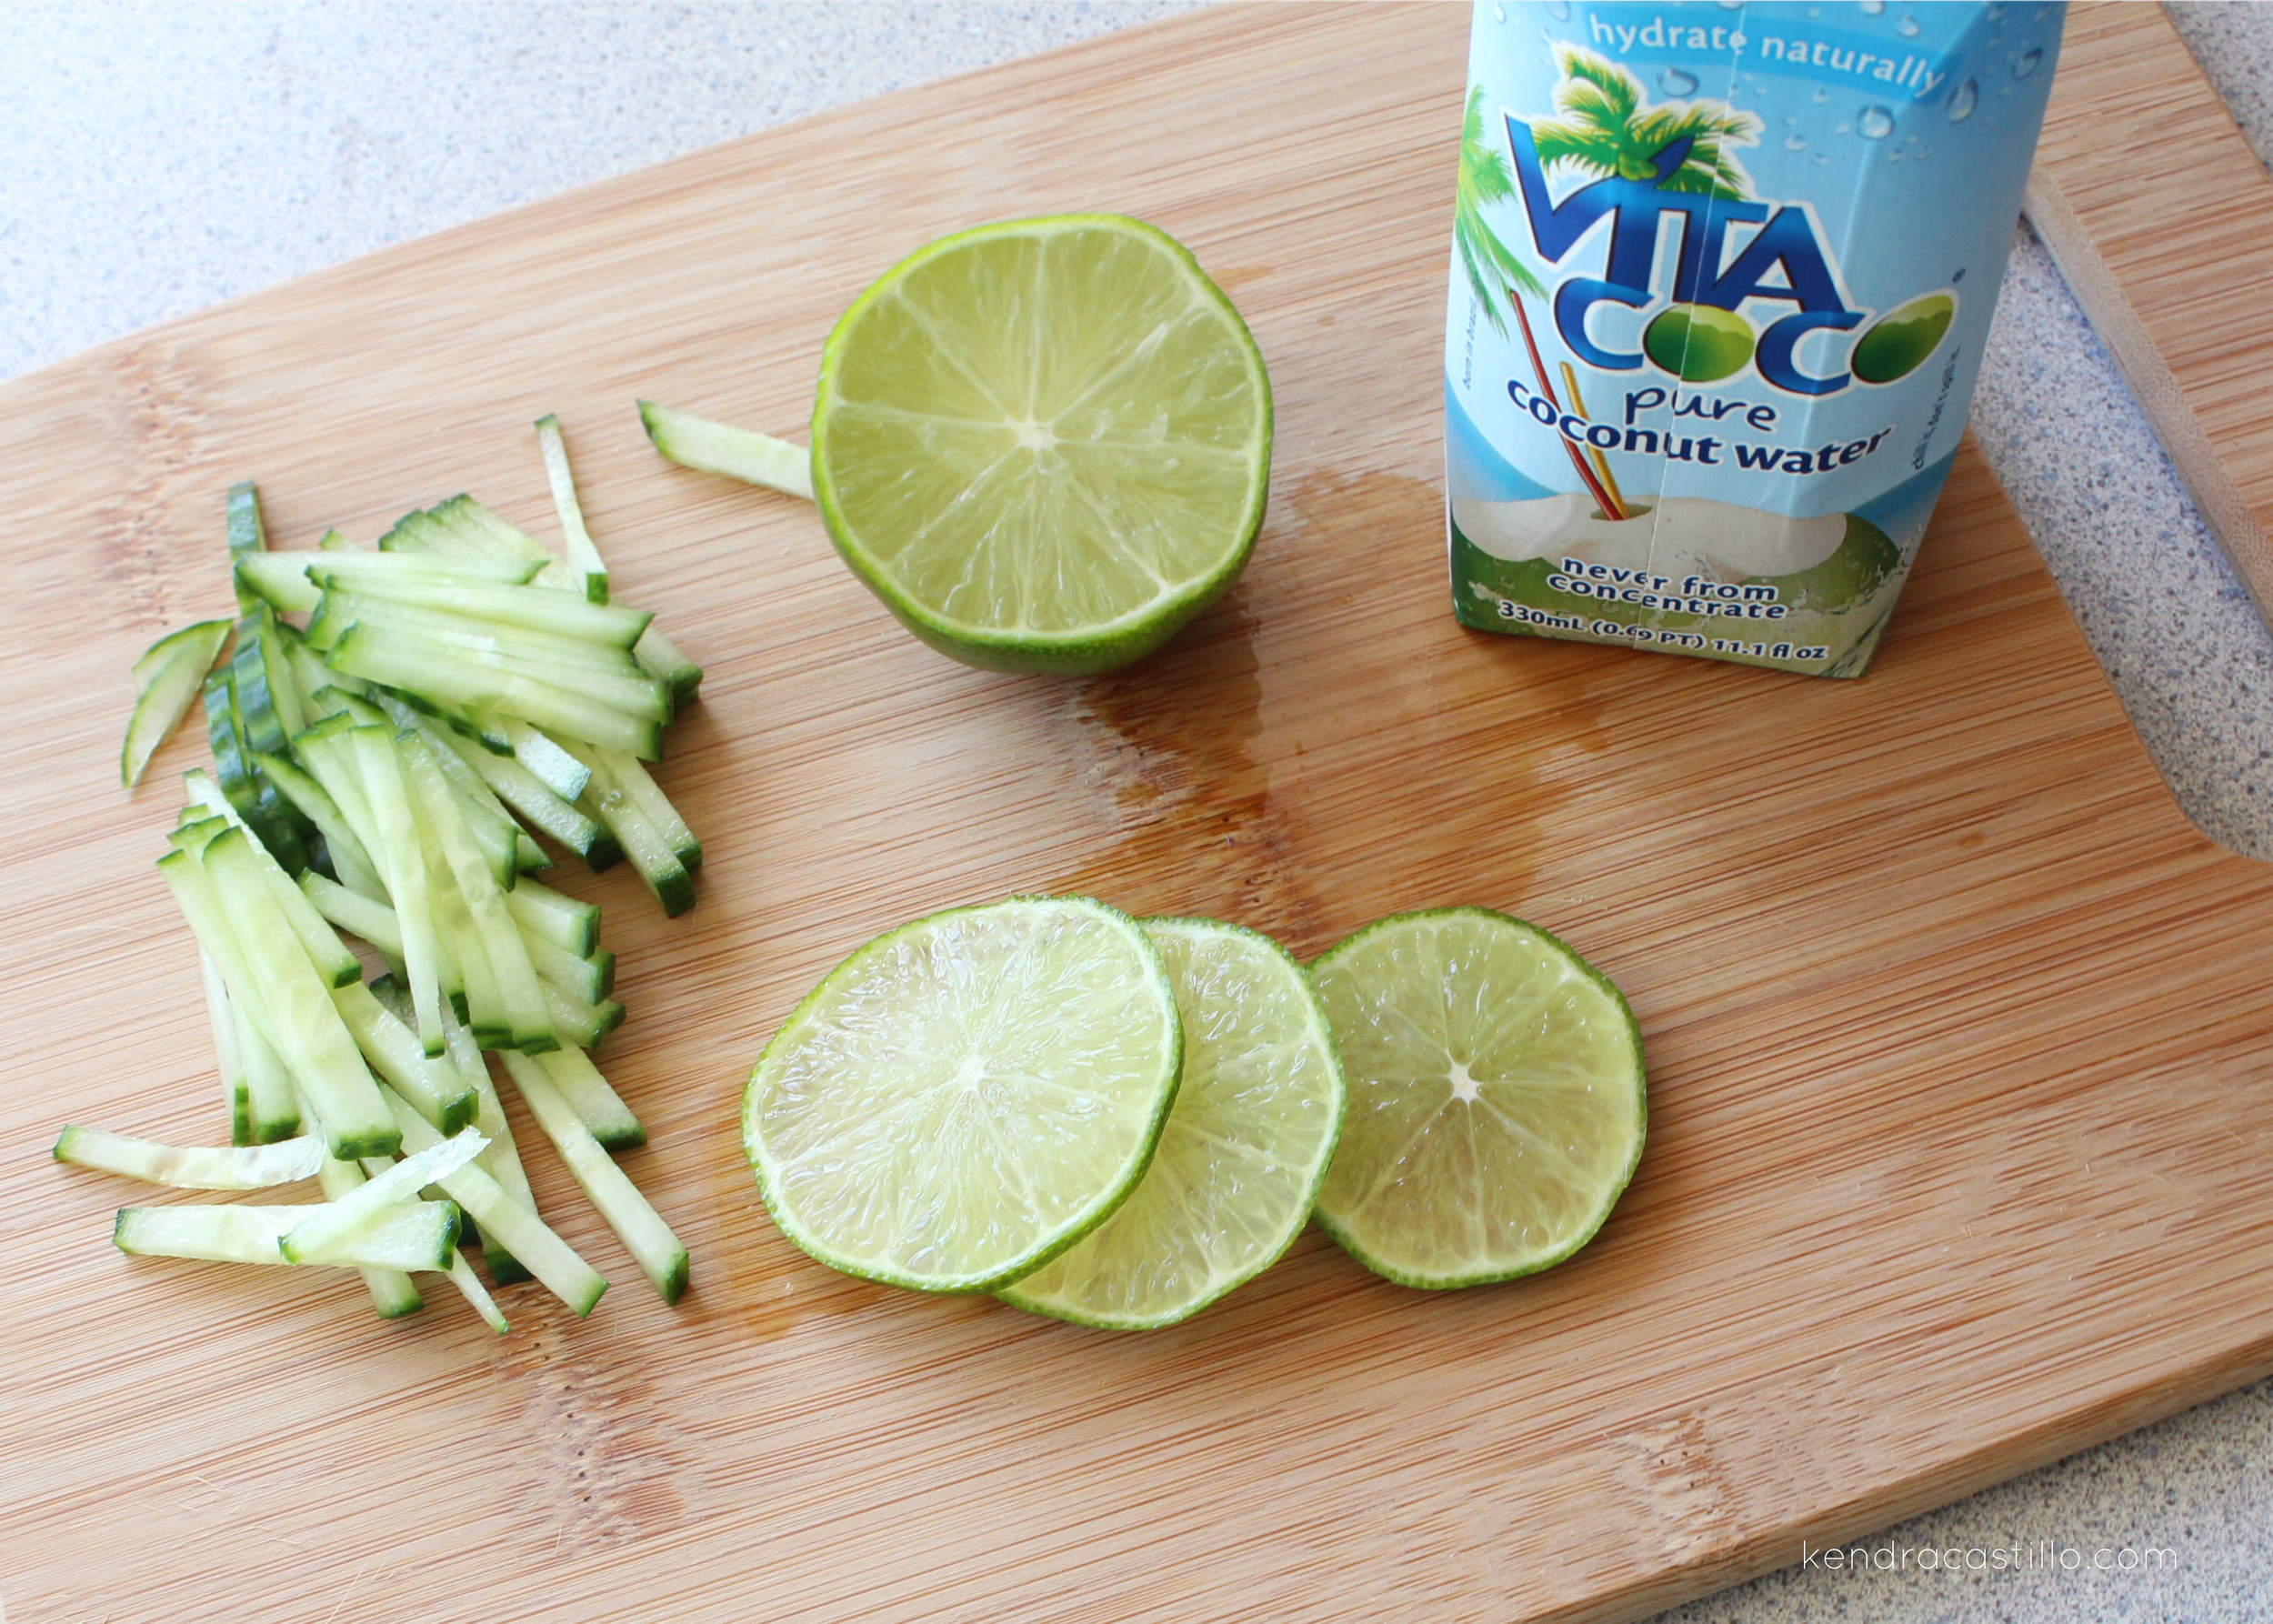 Kendra Castillo: Cucumber Coconut Lime Popsicle Recipe